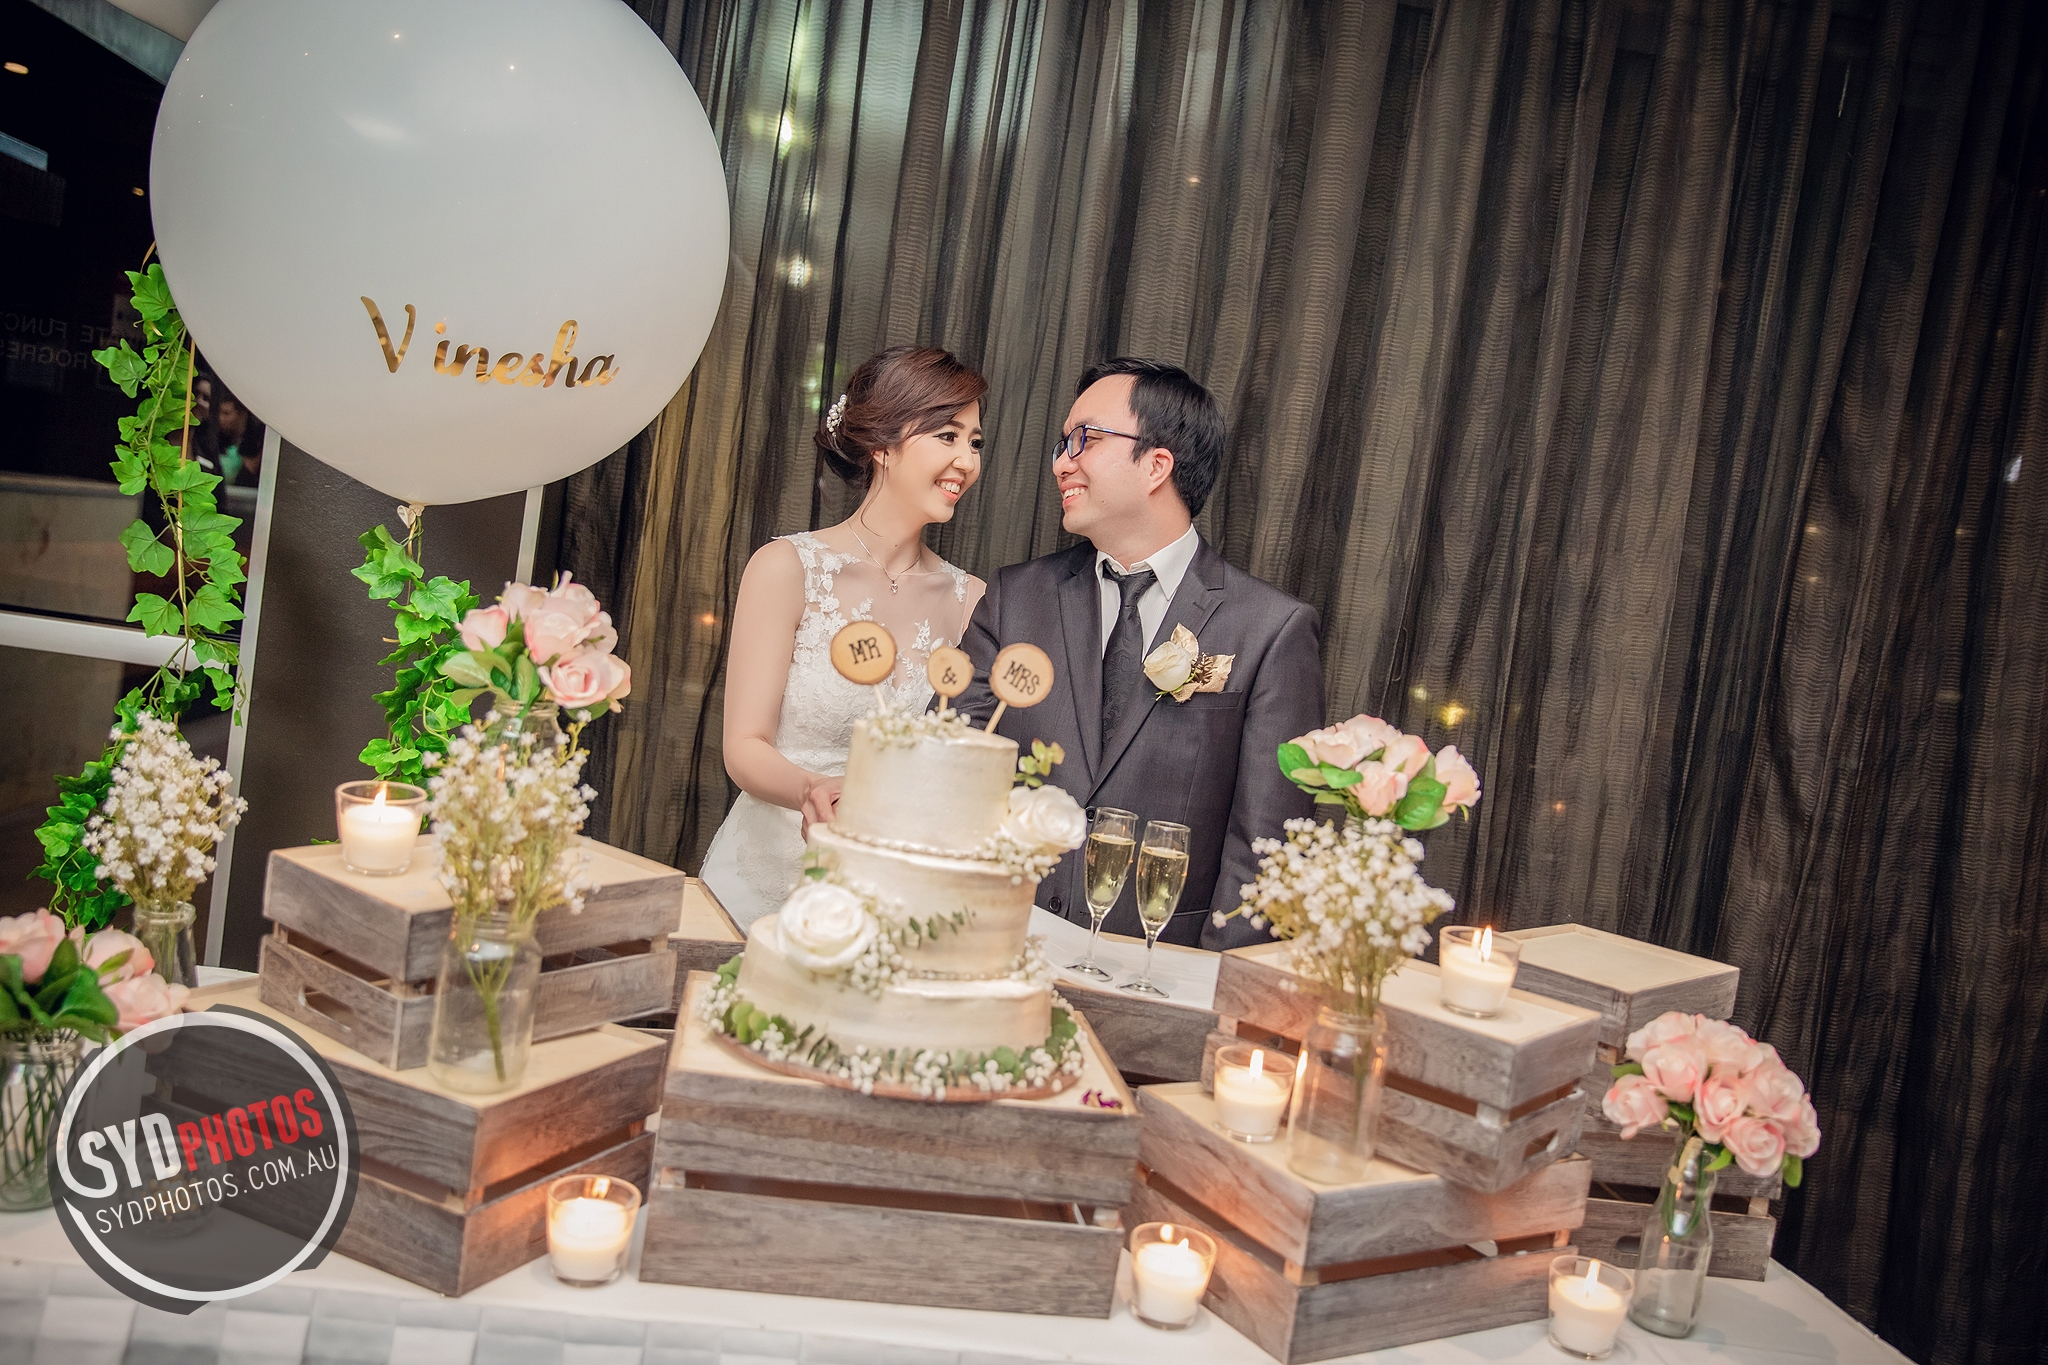 ID-103458-William-Wedding-悉尼婚礼摄影